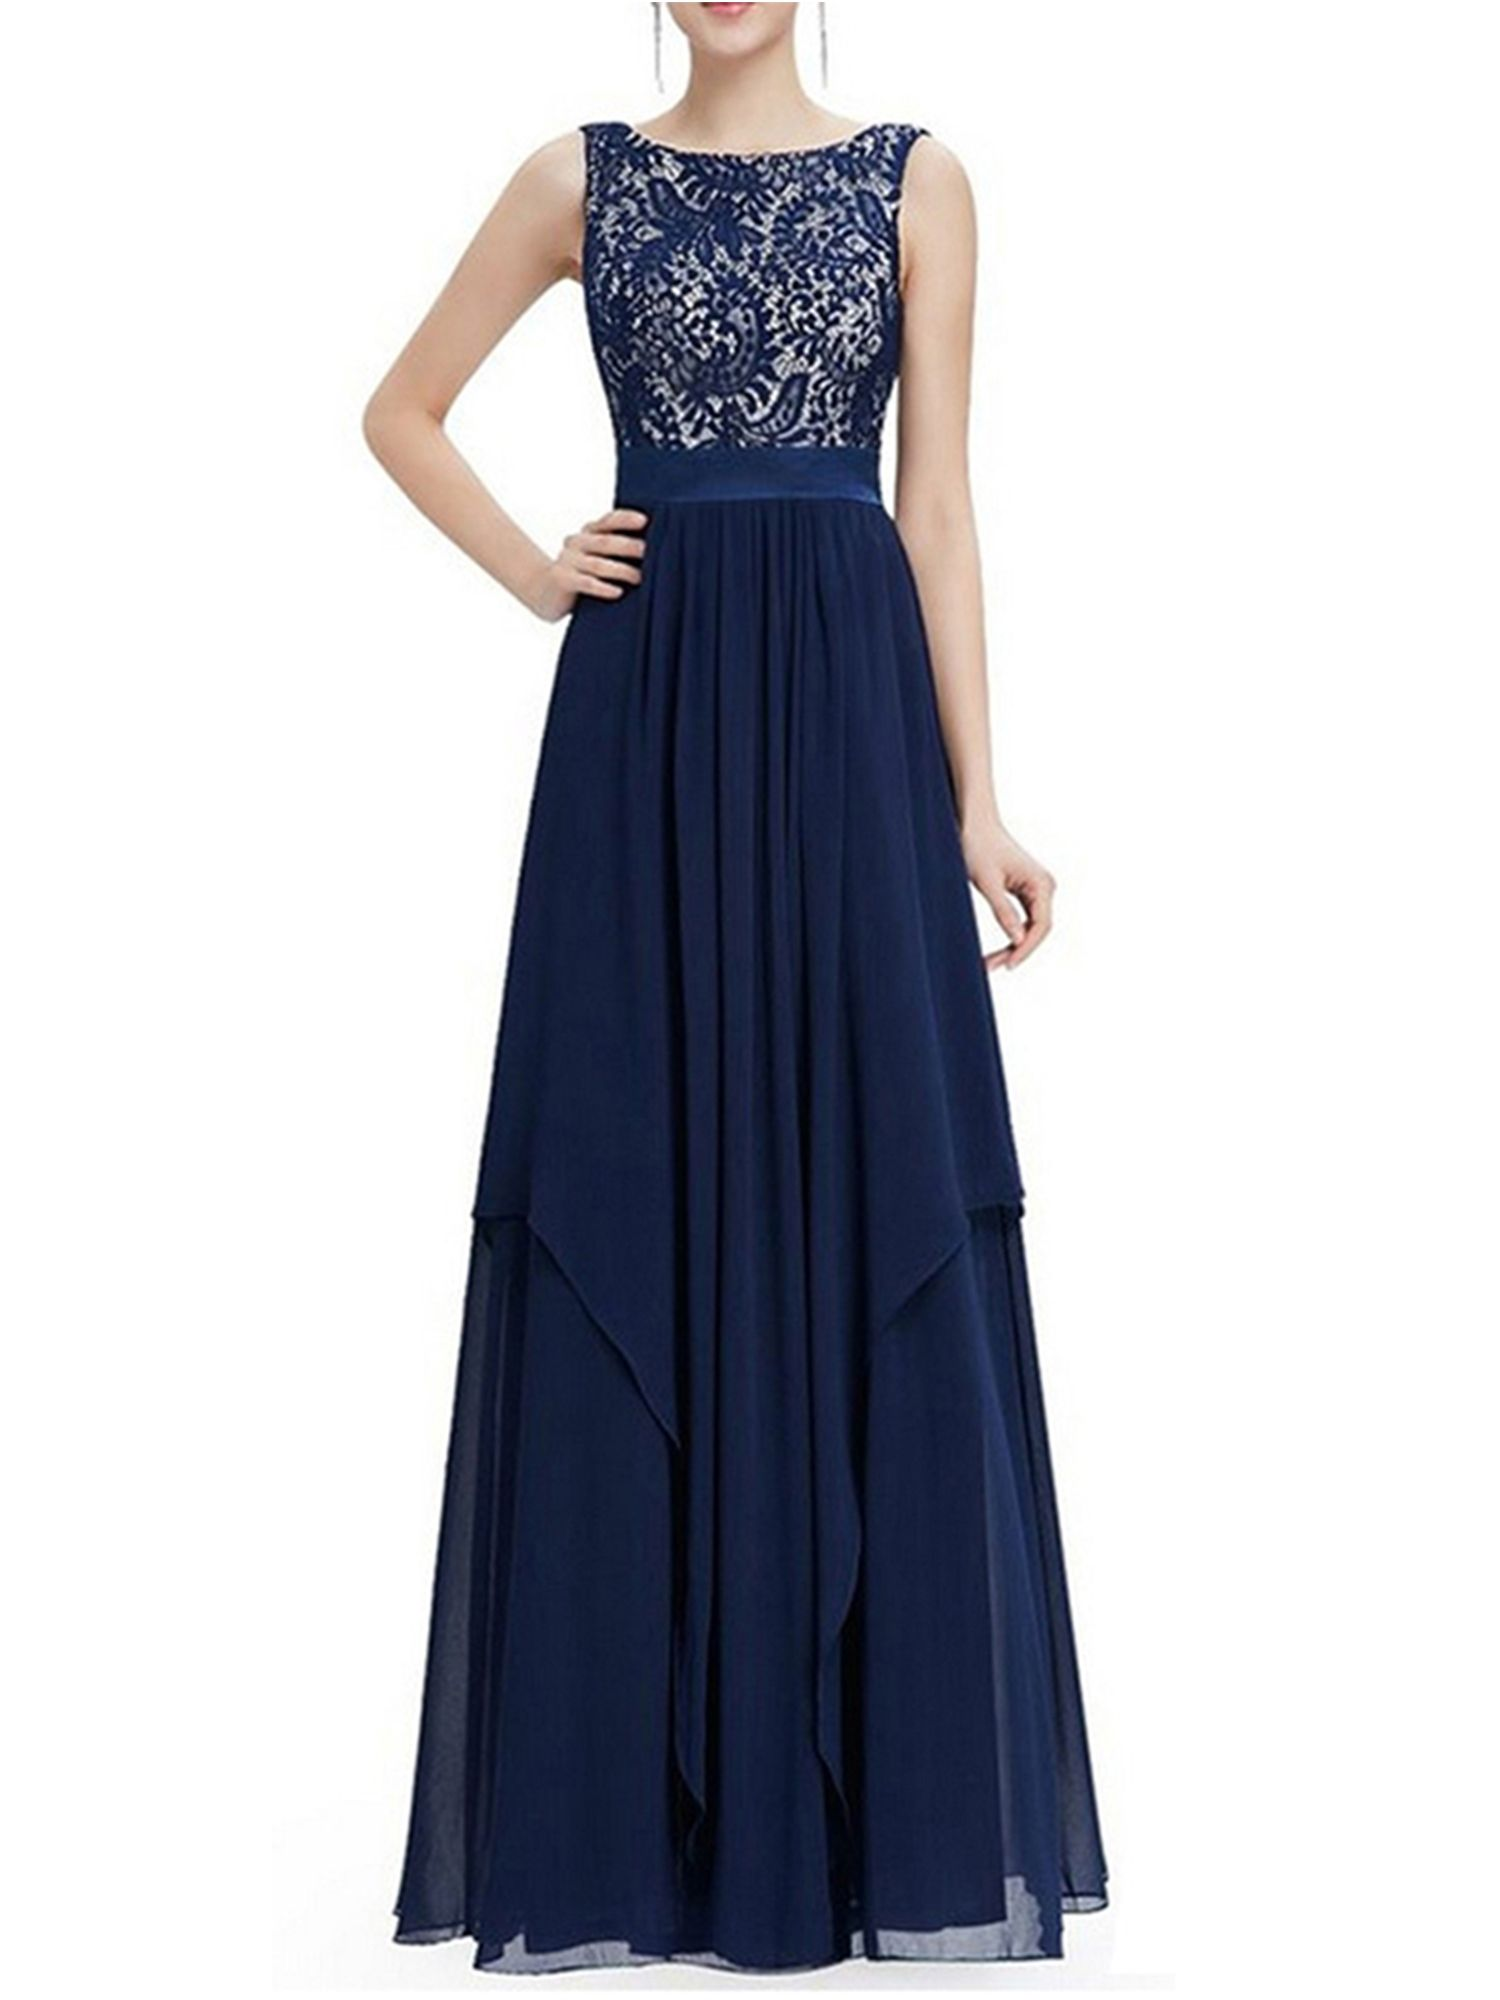 Women Long Maxi Chiffon Evening Formal Party Cocktail Dress Bridesmaid Prom Gown